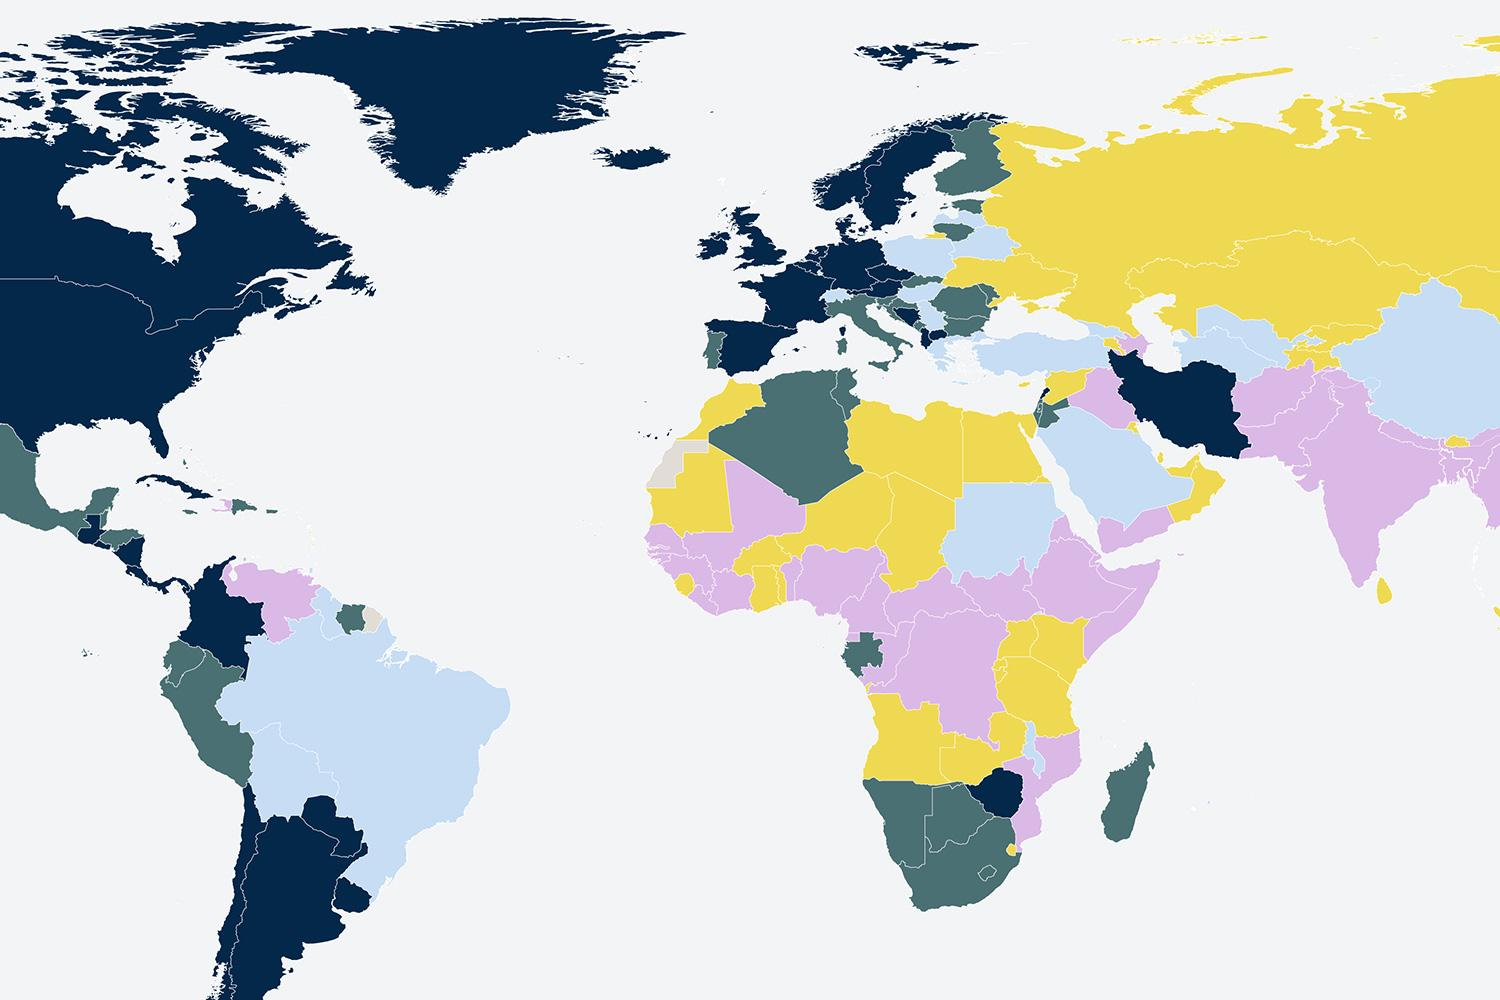 Image shows a map of the world color coded according to percent of government spending on health in 2017.